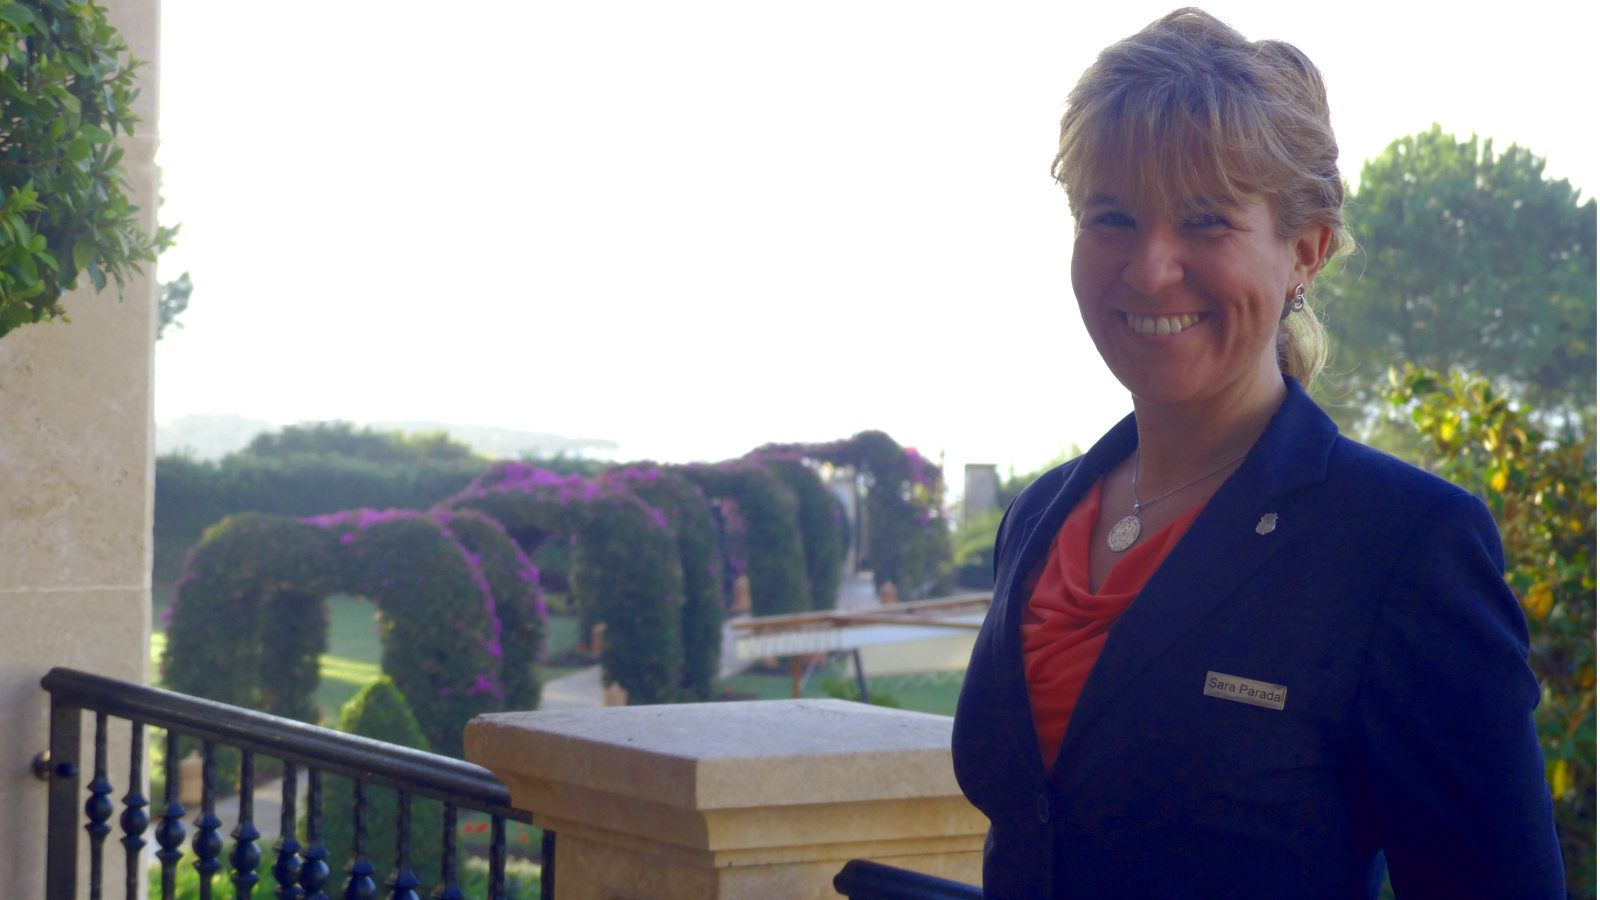 Sara Parada Sales Manager - Events at The St. Regis Mardavall Mallorca